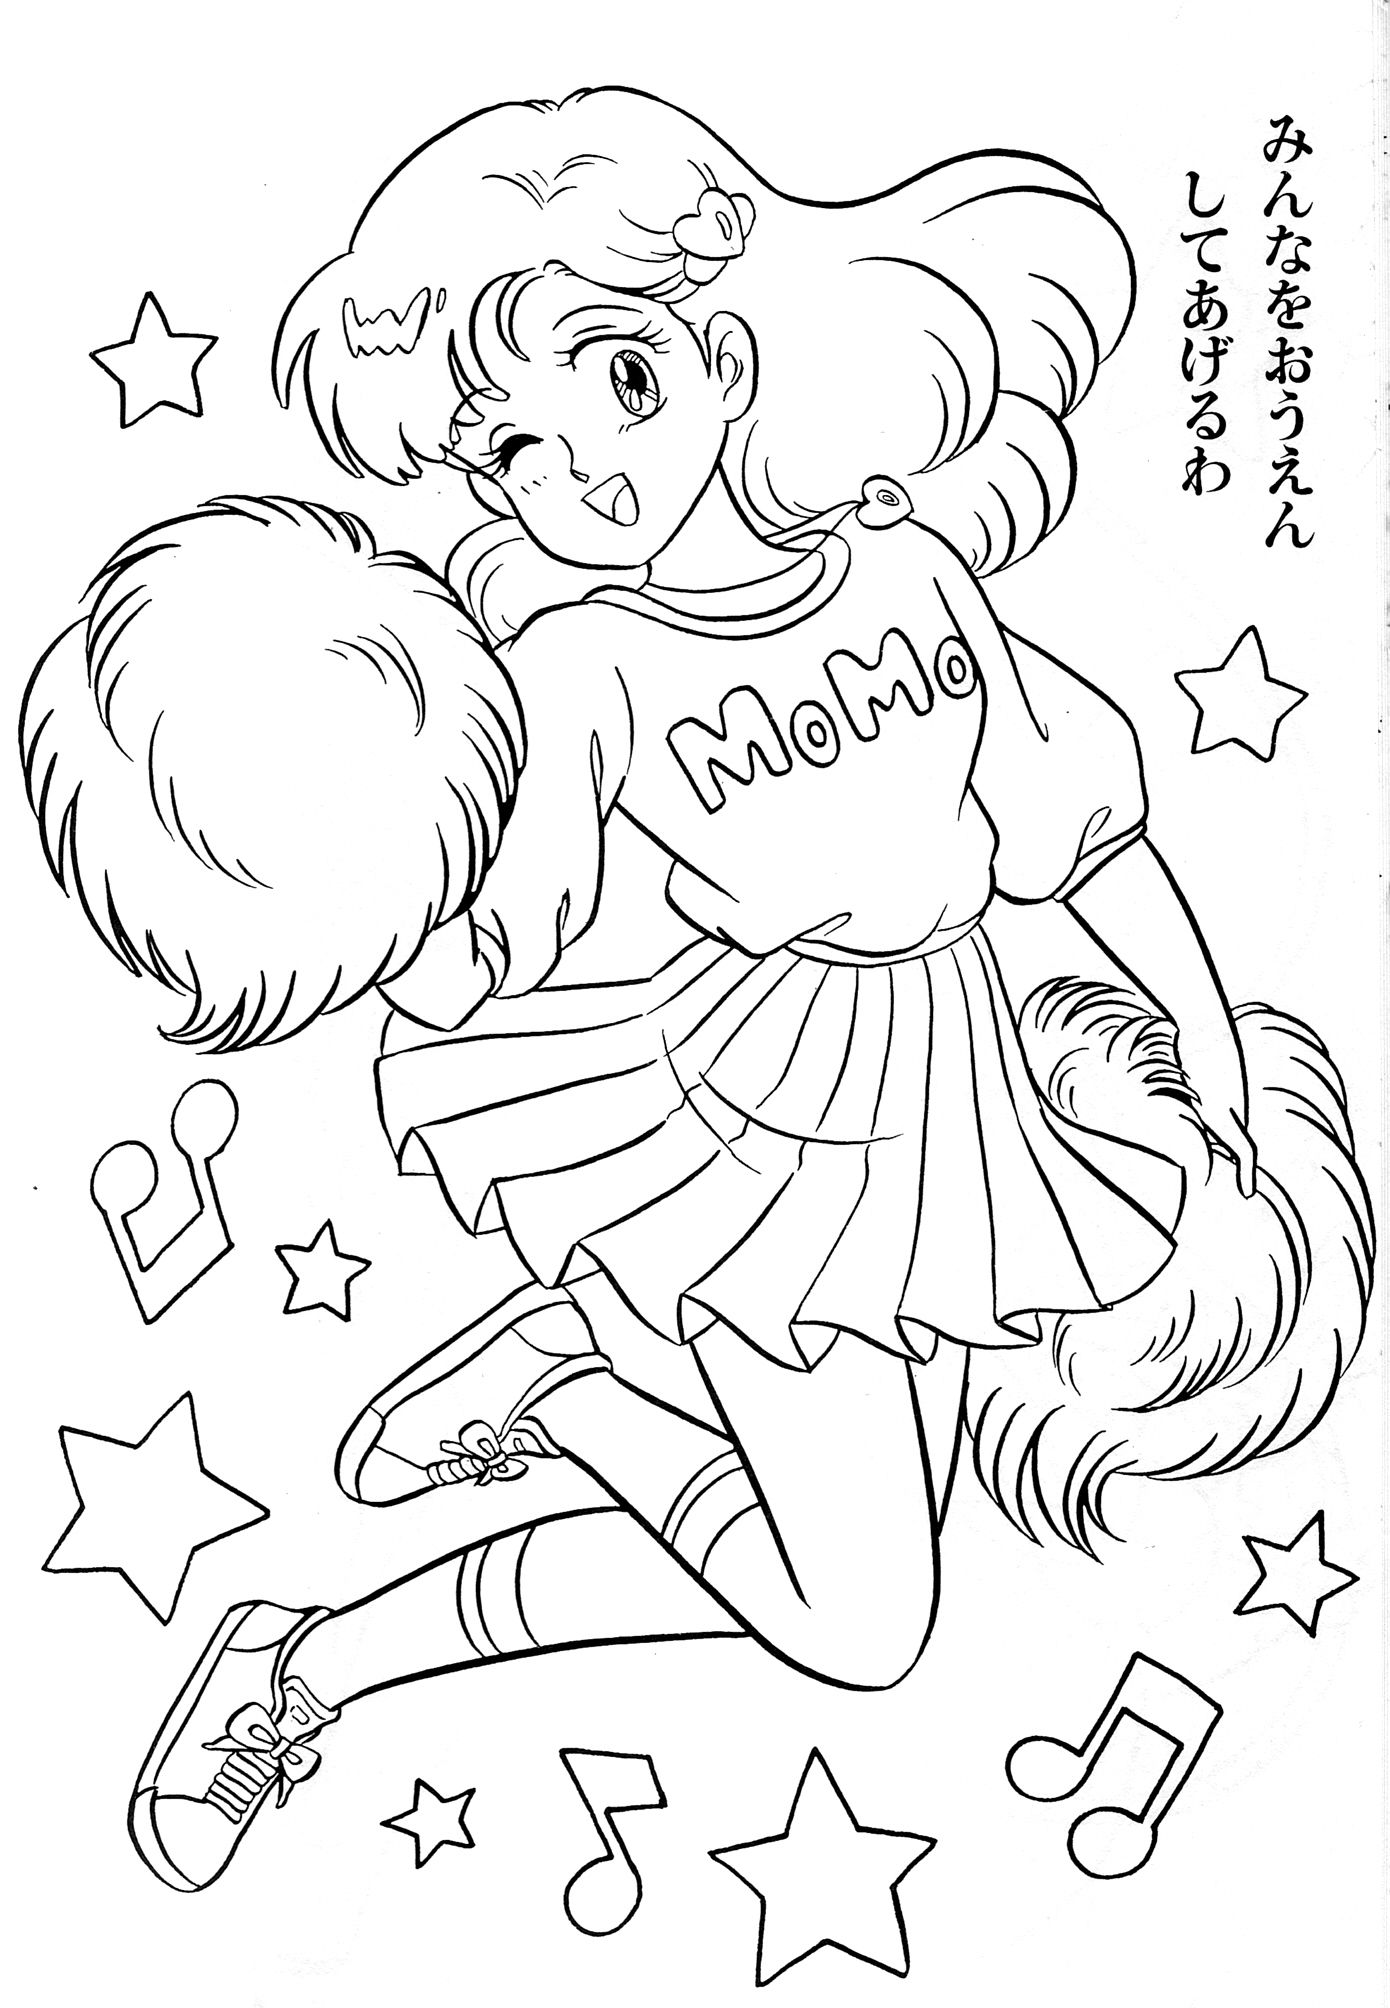 Pin by Michelle on Anime coloring pages! (With images ...